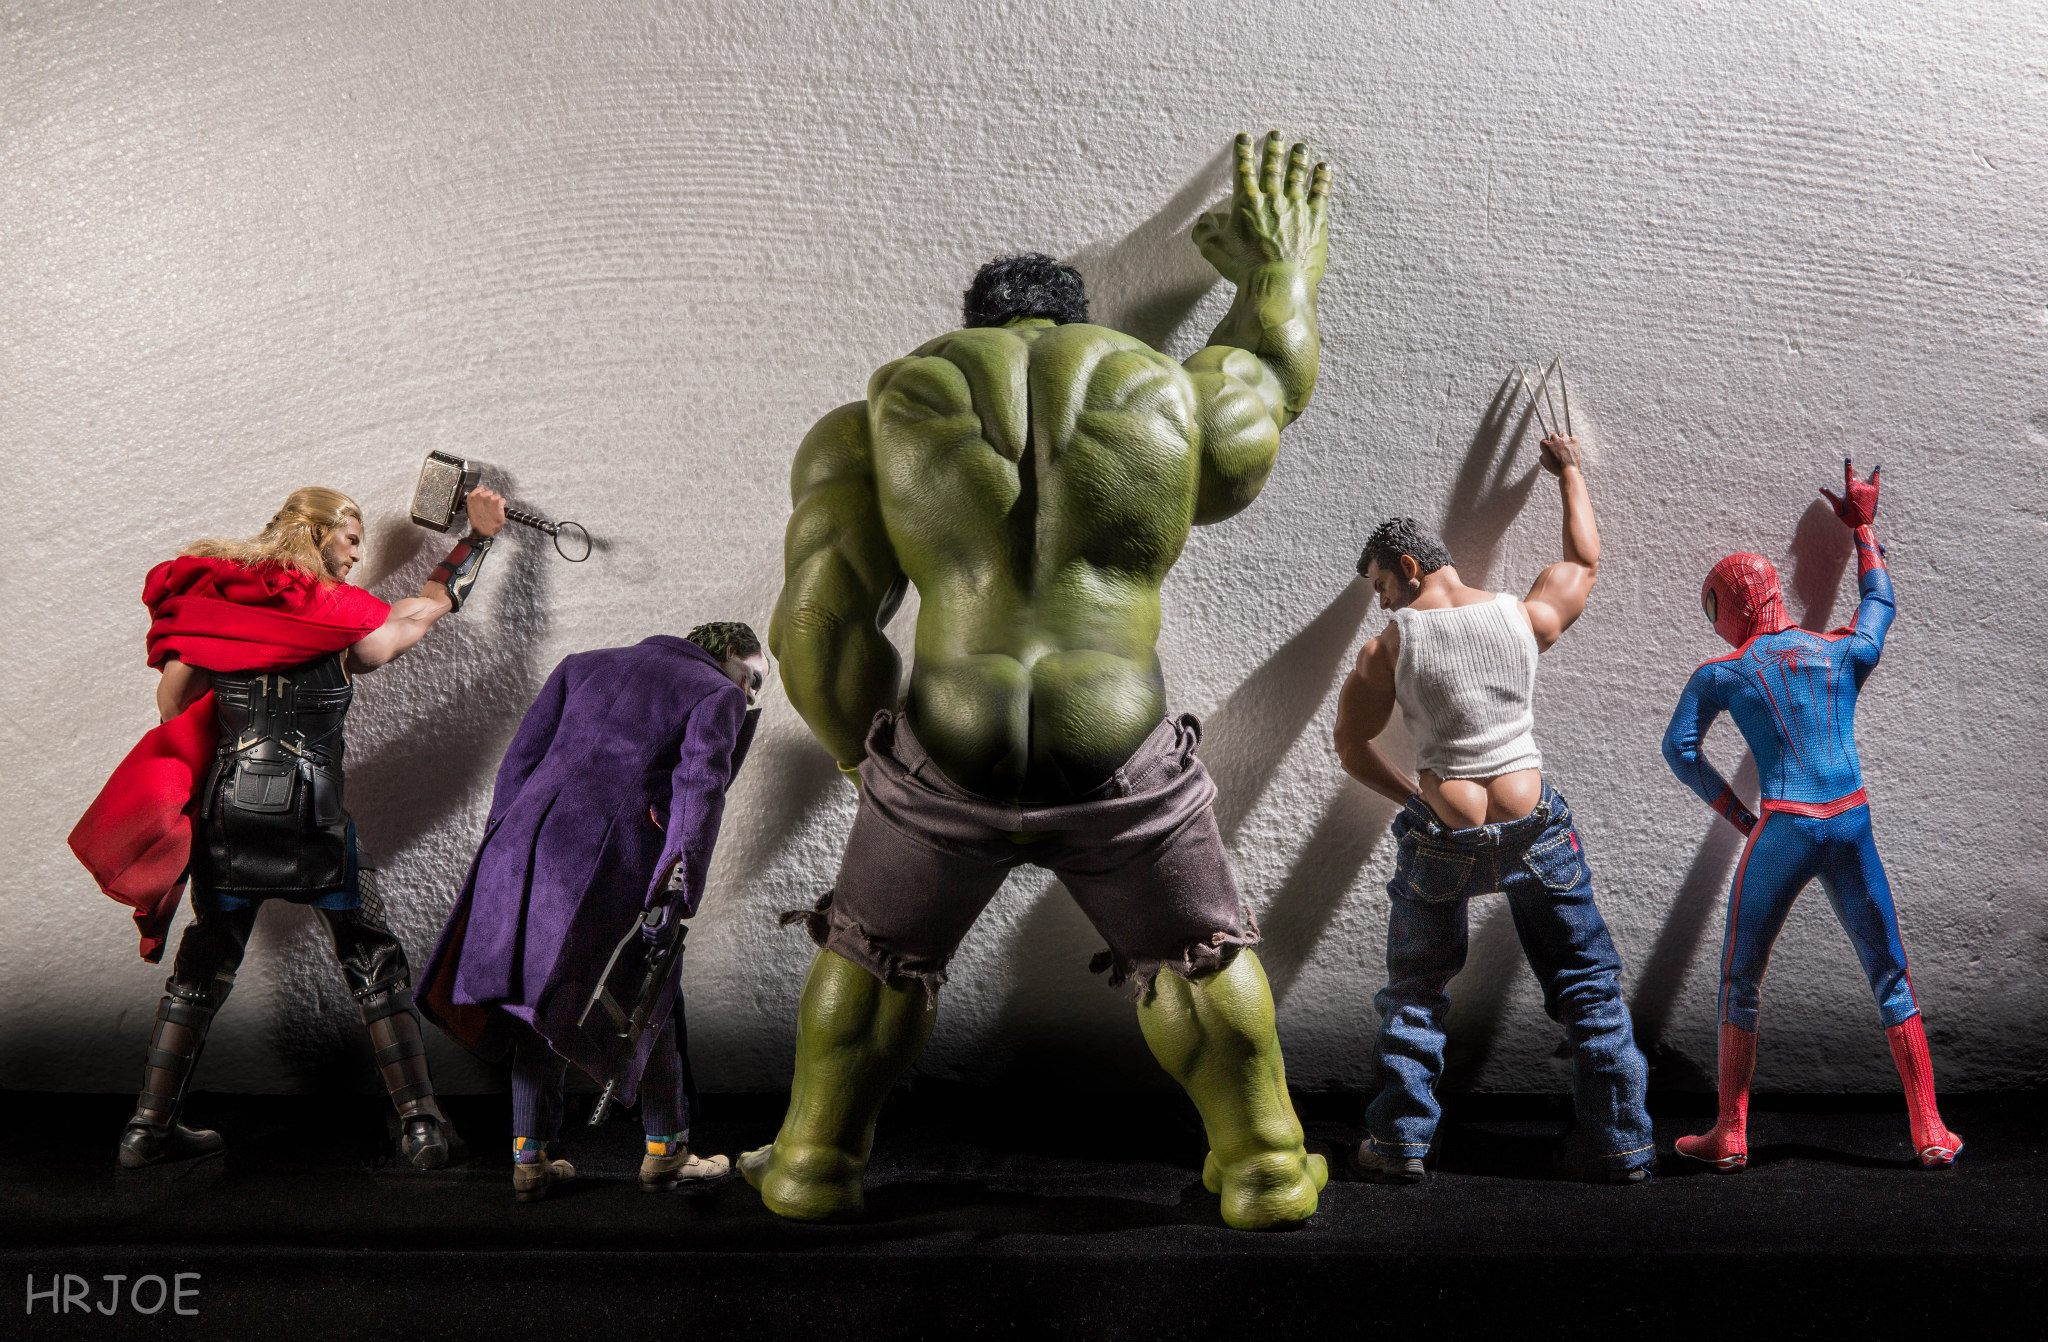 Photographer turns Marvel & DC superheros toys into regular folks with hilarious staging